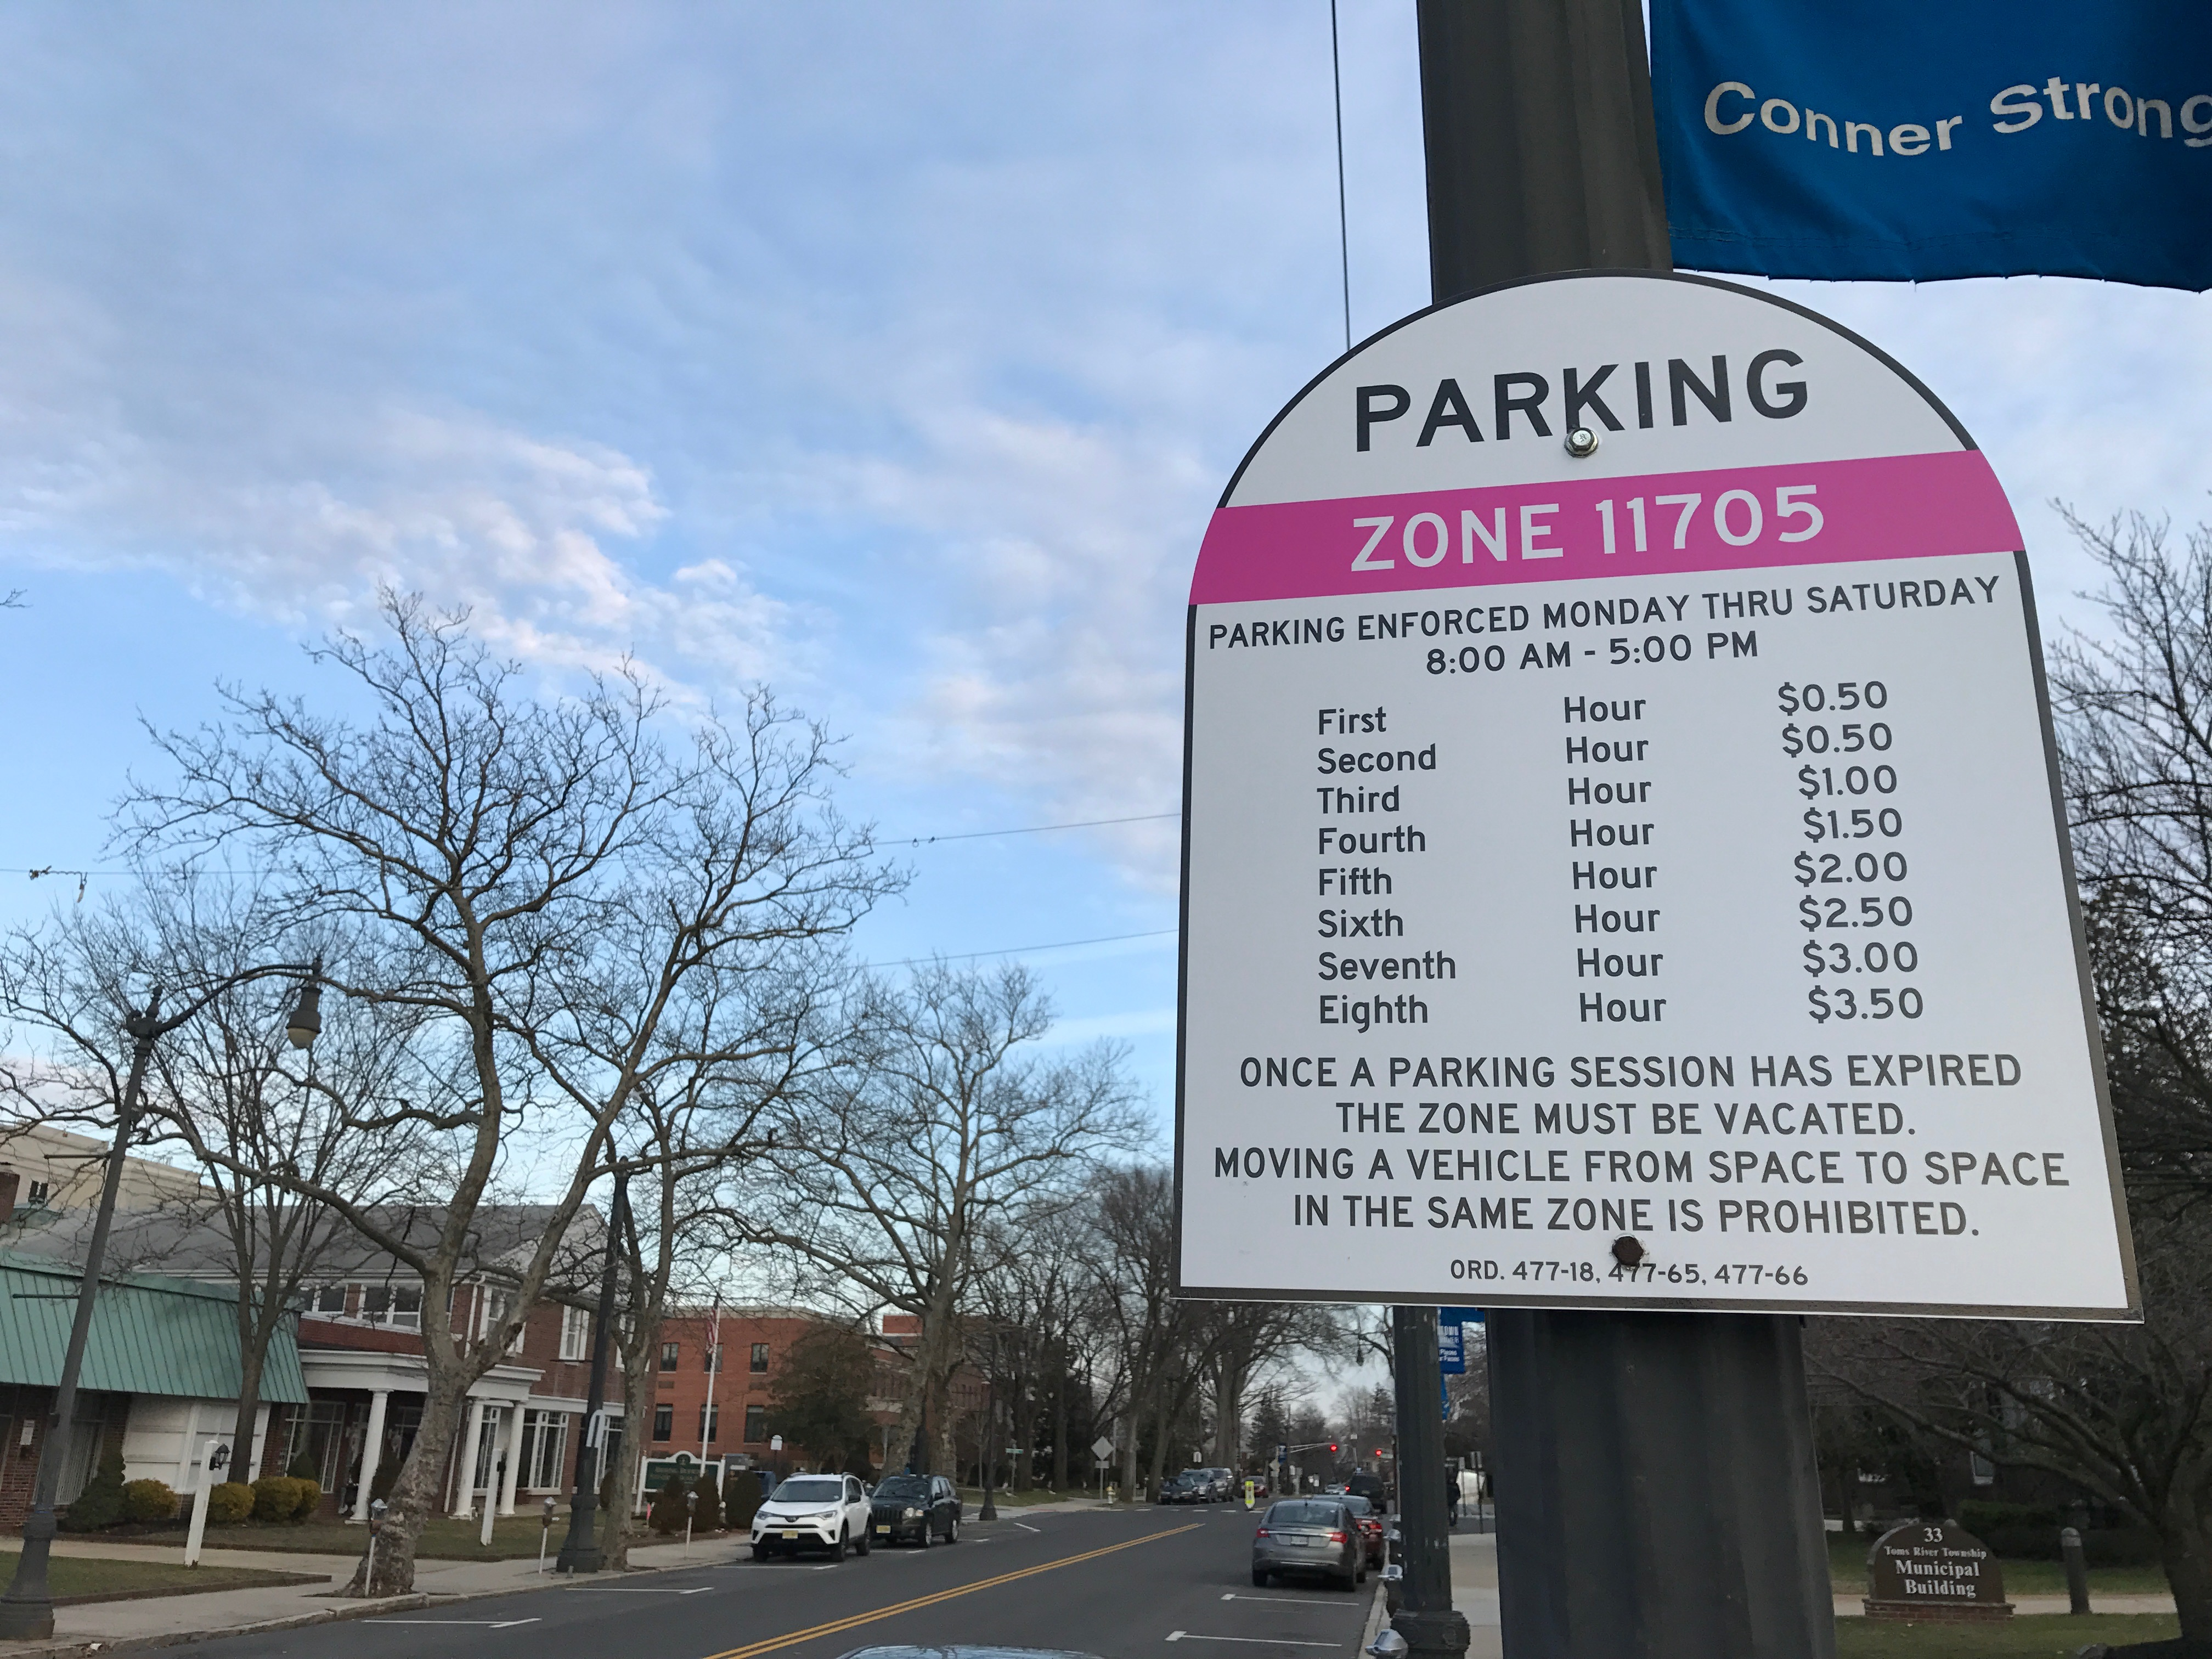 A parking regulation sign in downtown Toms River. (Photo: Daniel Nee)